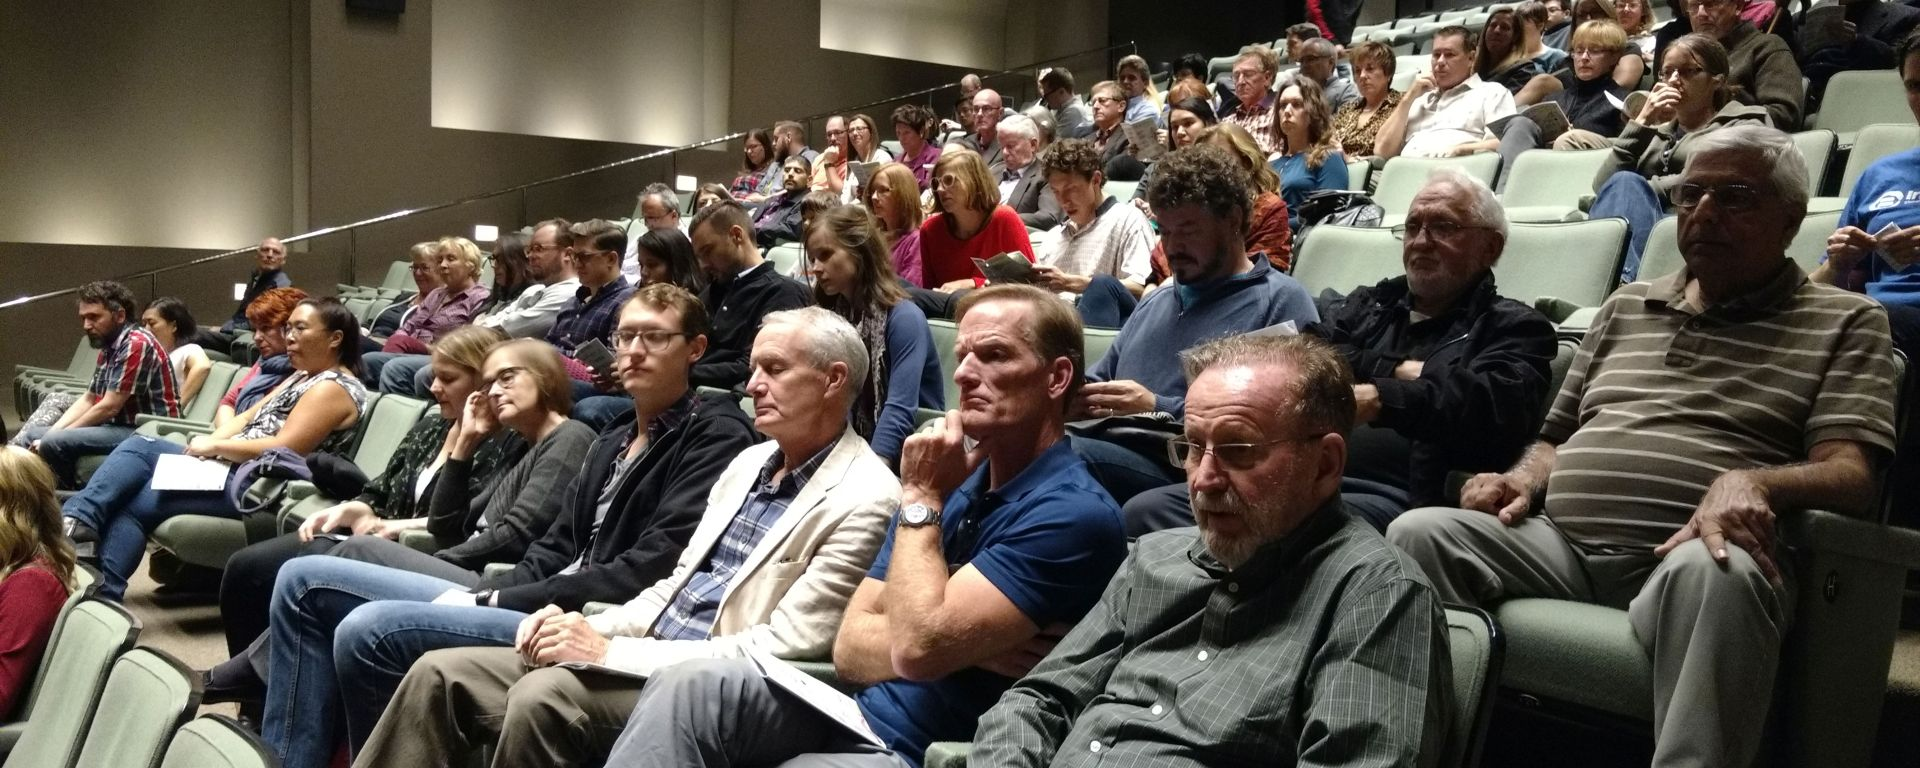 A packed house for After the Last River's Ottawa premiere.